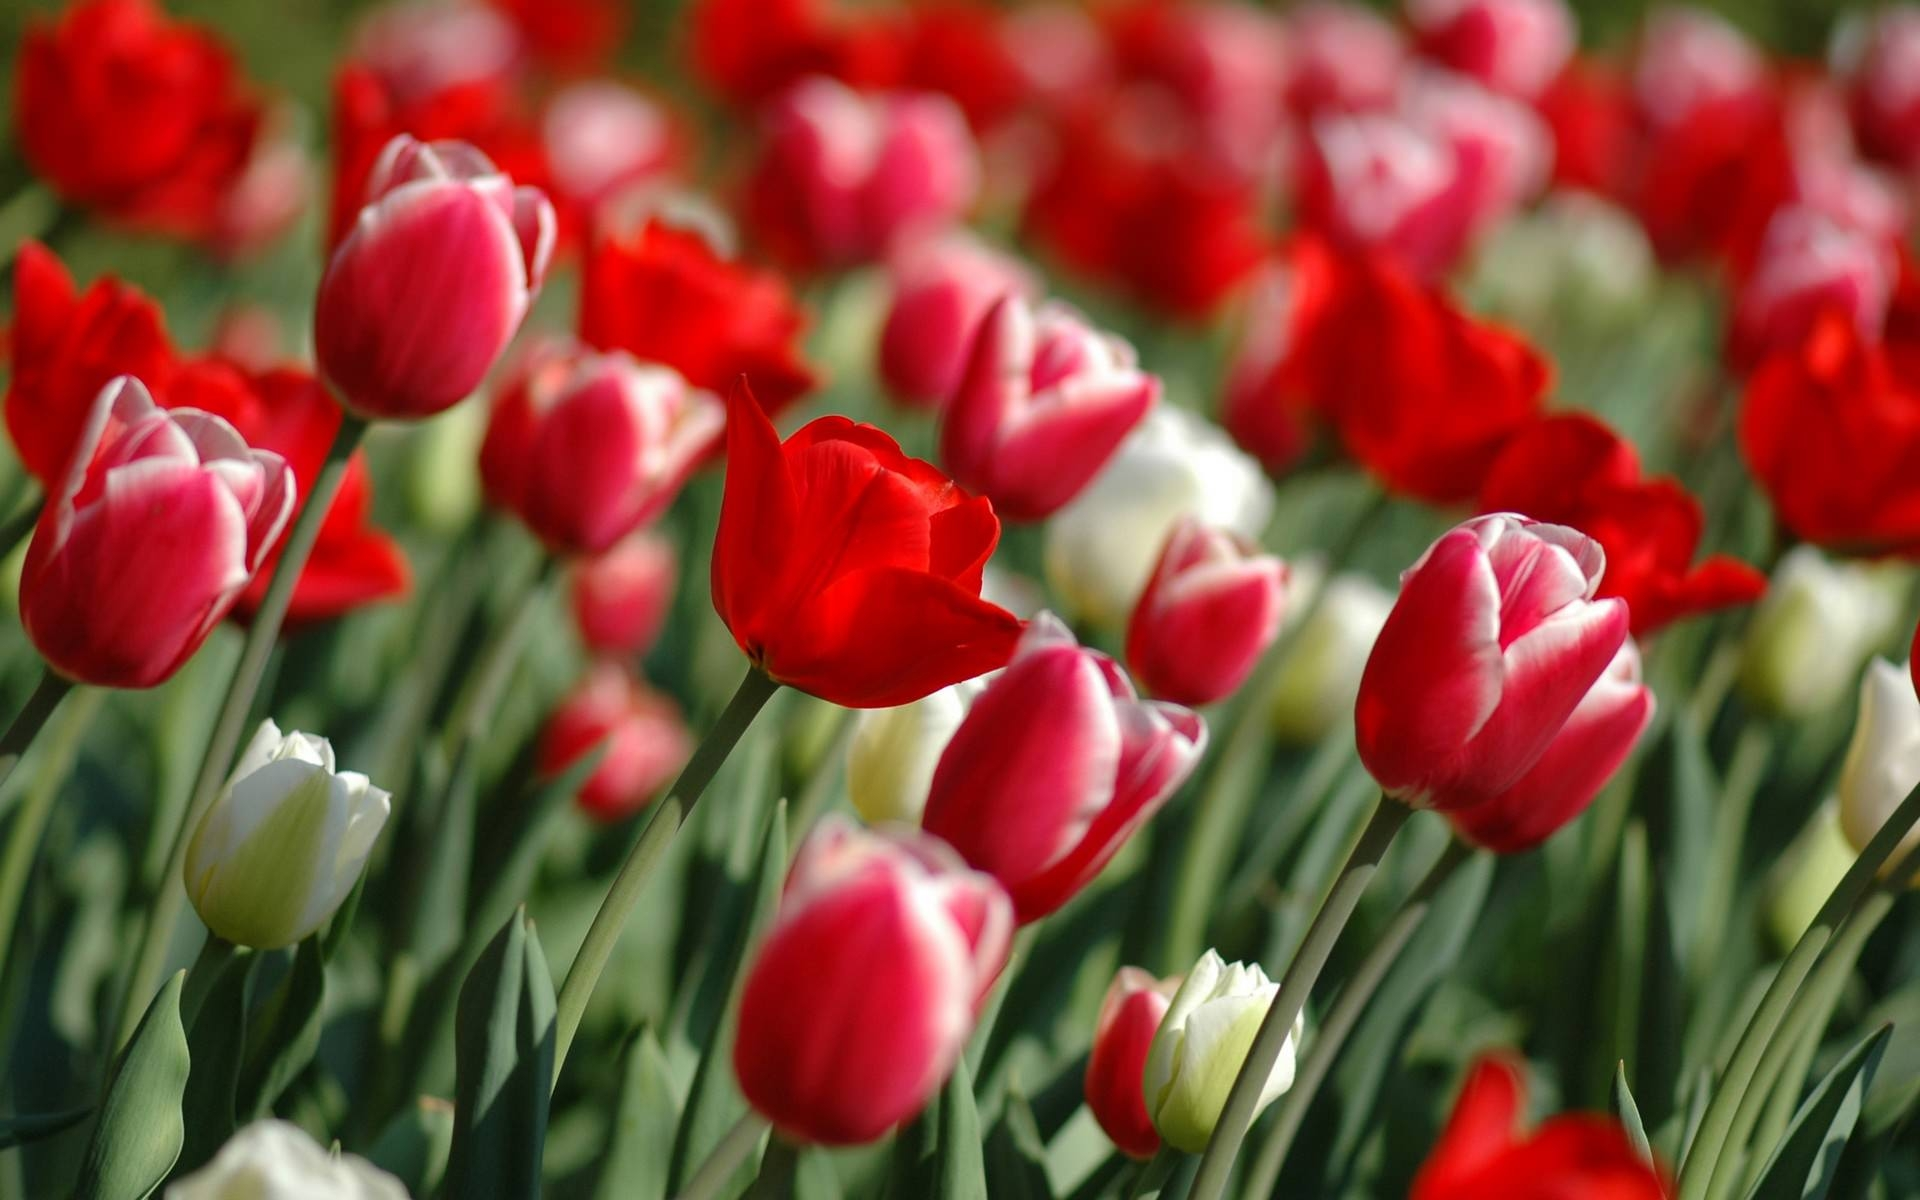 red tulips in spring season hd widescreen wallpaper